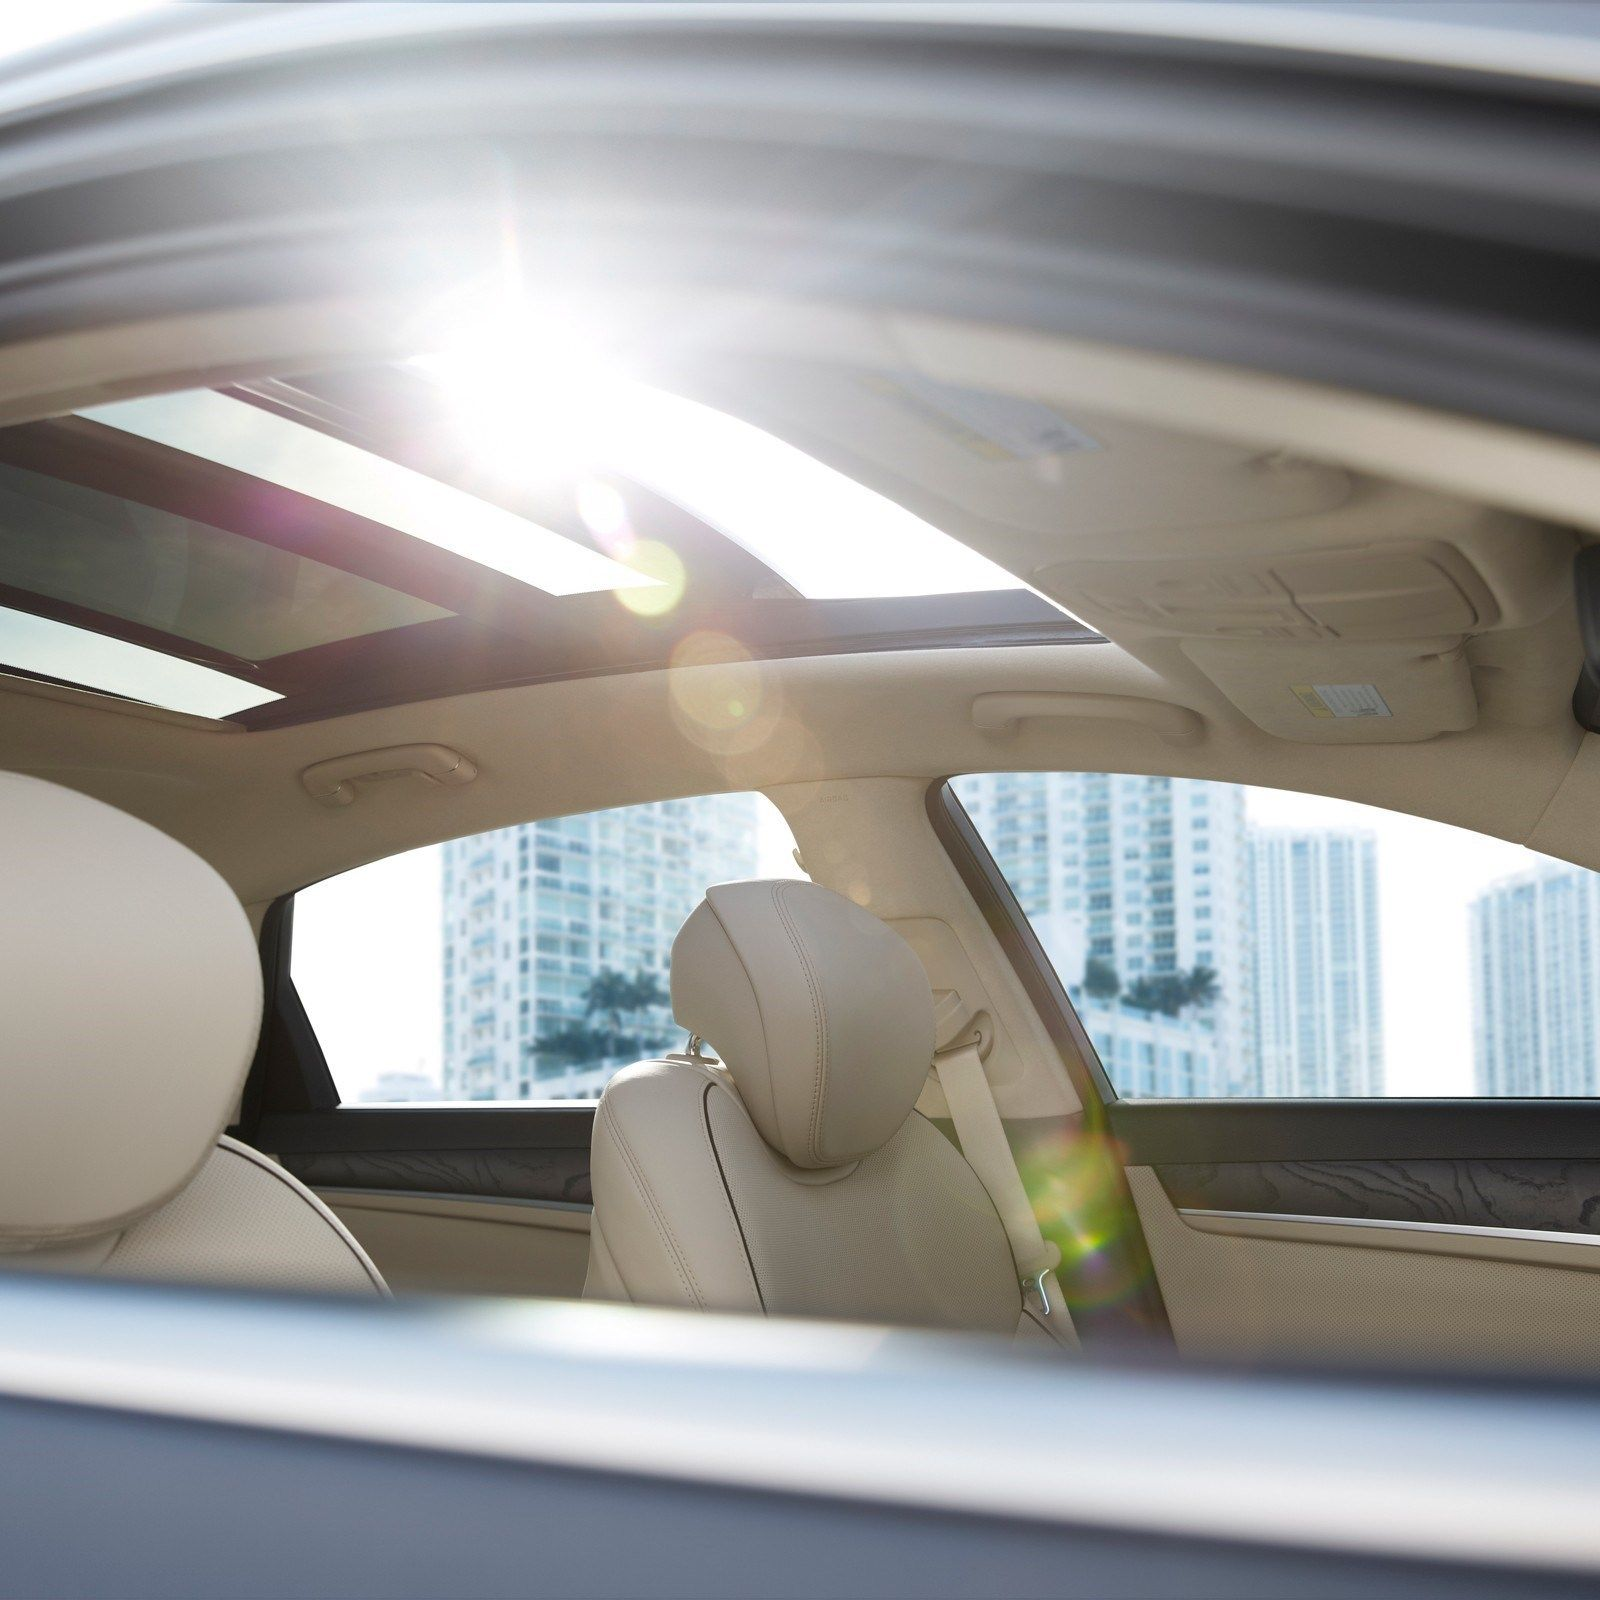 """<p>Let the sun in, but only if you want to with a panoramic sunroof that&nbsp&#x3B;not only extends from windshield to back window, but also tilts to let the air in. And if you tire of the sun and its warming glow, you'll want a power rear sunshade for the back window, and manual rear window shades for your exalted friends. <span class=""""redactor-invisible-space"""" data-verified=""""redactor"""" data-redactor-tag=""""span"""" data-redactor-class=""""redactor-invisible-space""""></span><span class=""""redactor-invisible-space"""" data-verified=""""redactor"""" data-redactor-tag=""""span"""" data-redactor-class=""""redactor-invisible-space""""></span><span class=""""redactor-invisible-space"""" data-verified=""""redactor"""" data-redactor-tag=""""span"""" data-redactor-class=""""redactor-invisible-space""""></span></p>"""